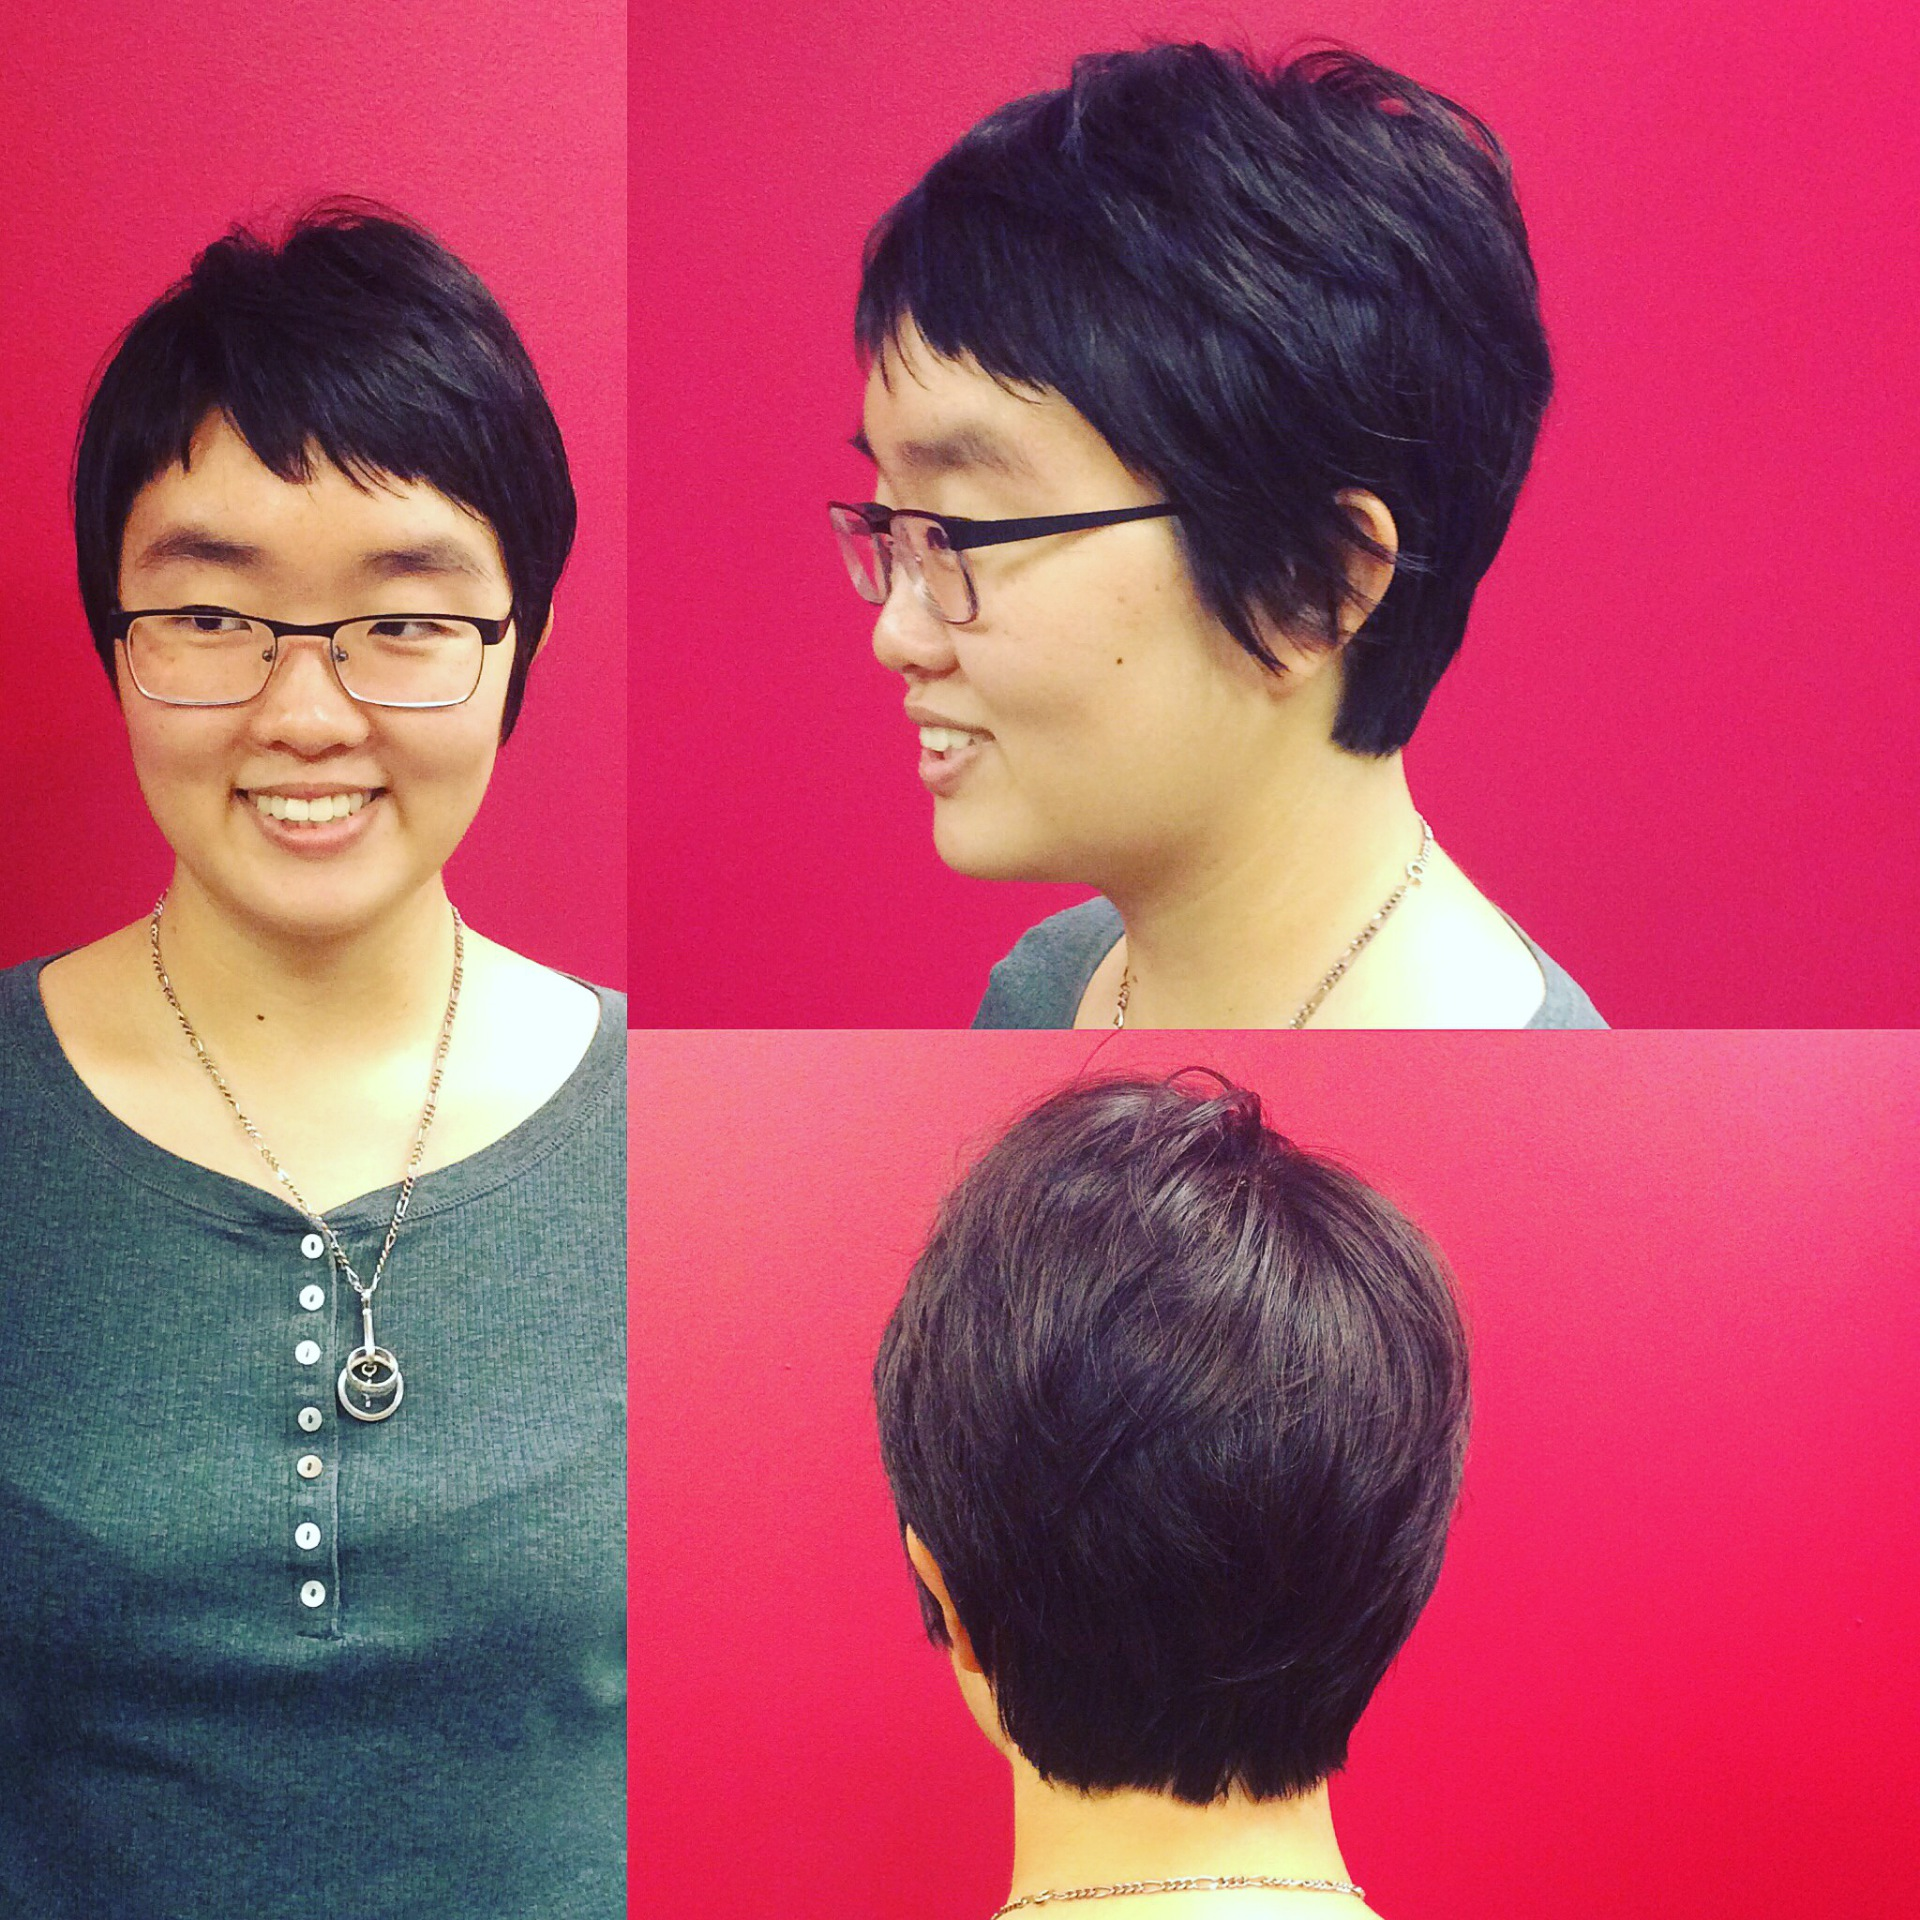 Pixie cut by Emily